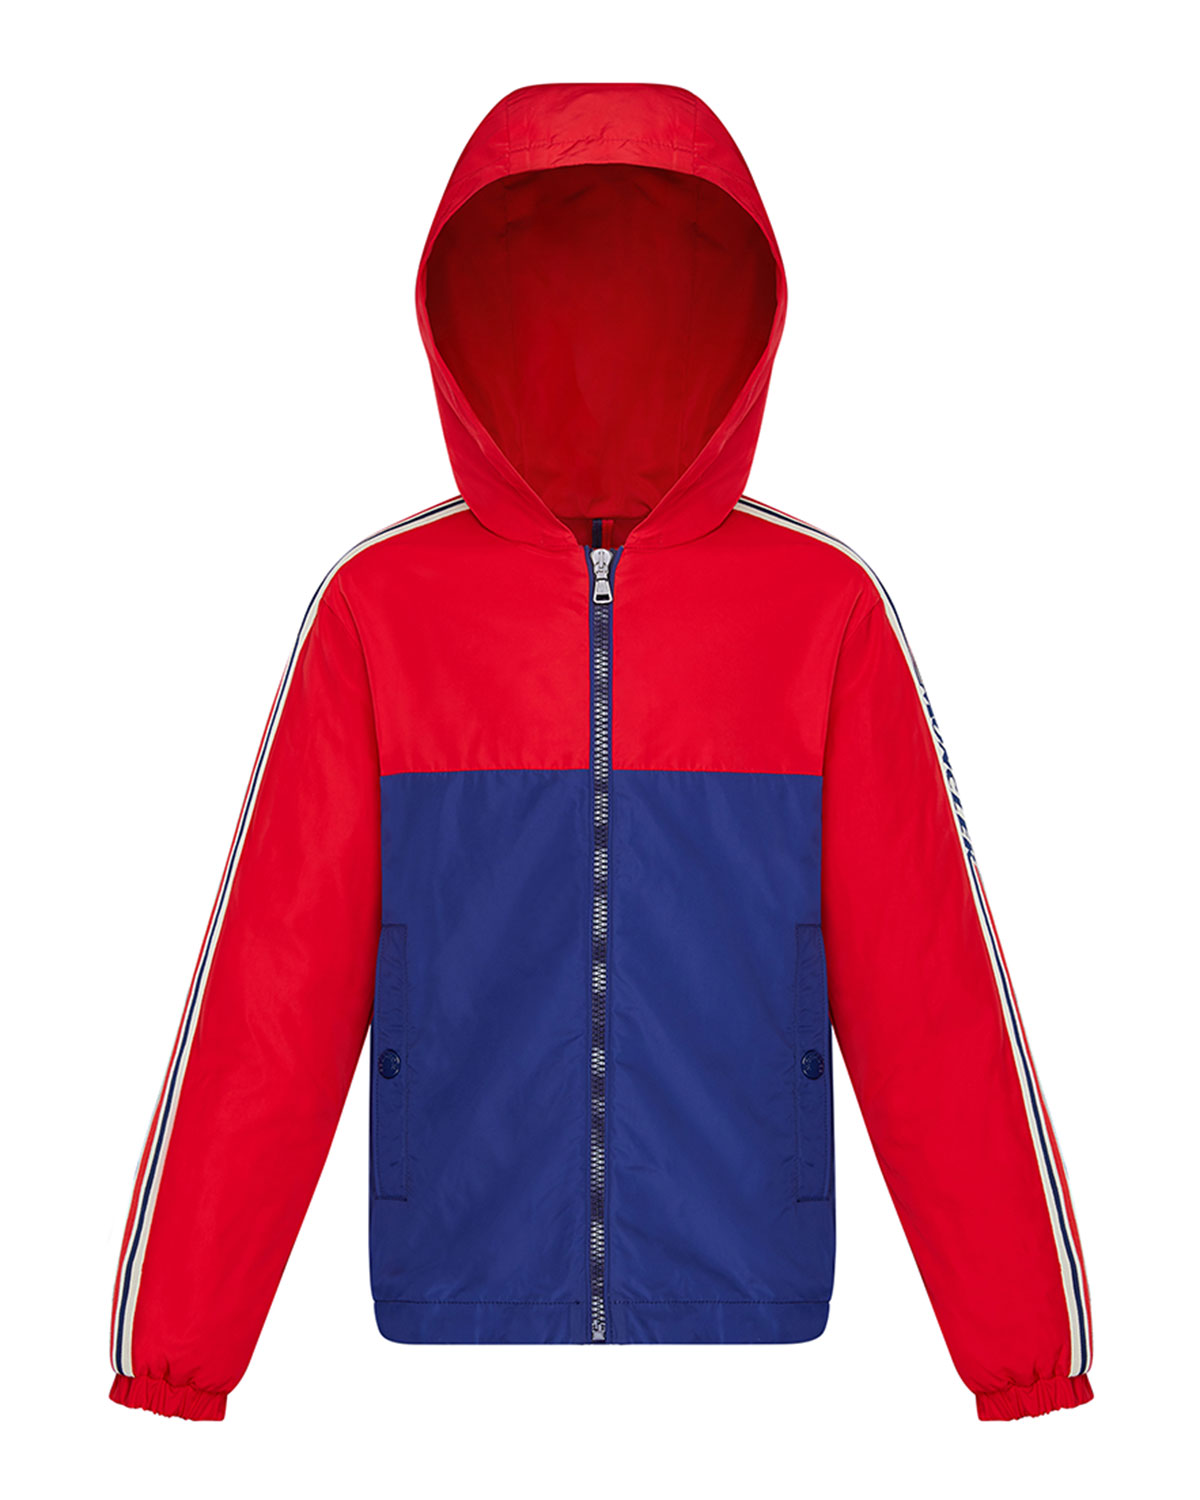 Moncler Jackets BOY'S GITTAZ TWO-TONE LOGO TAPE JACKET